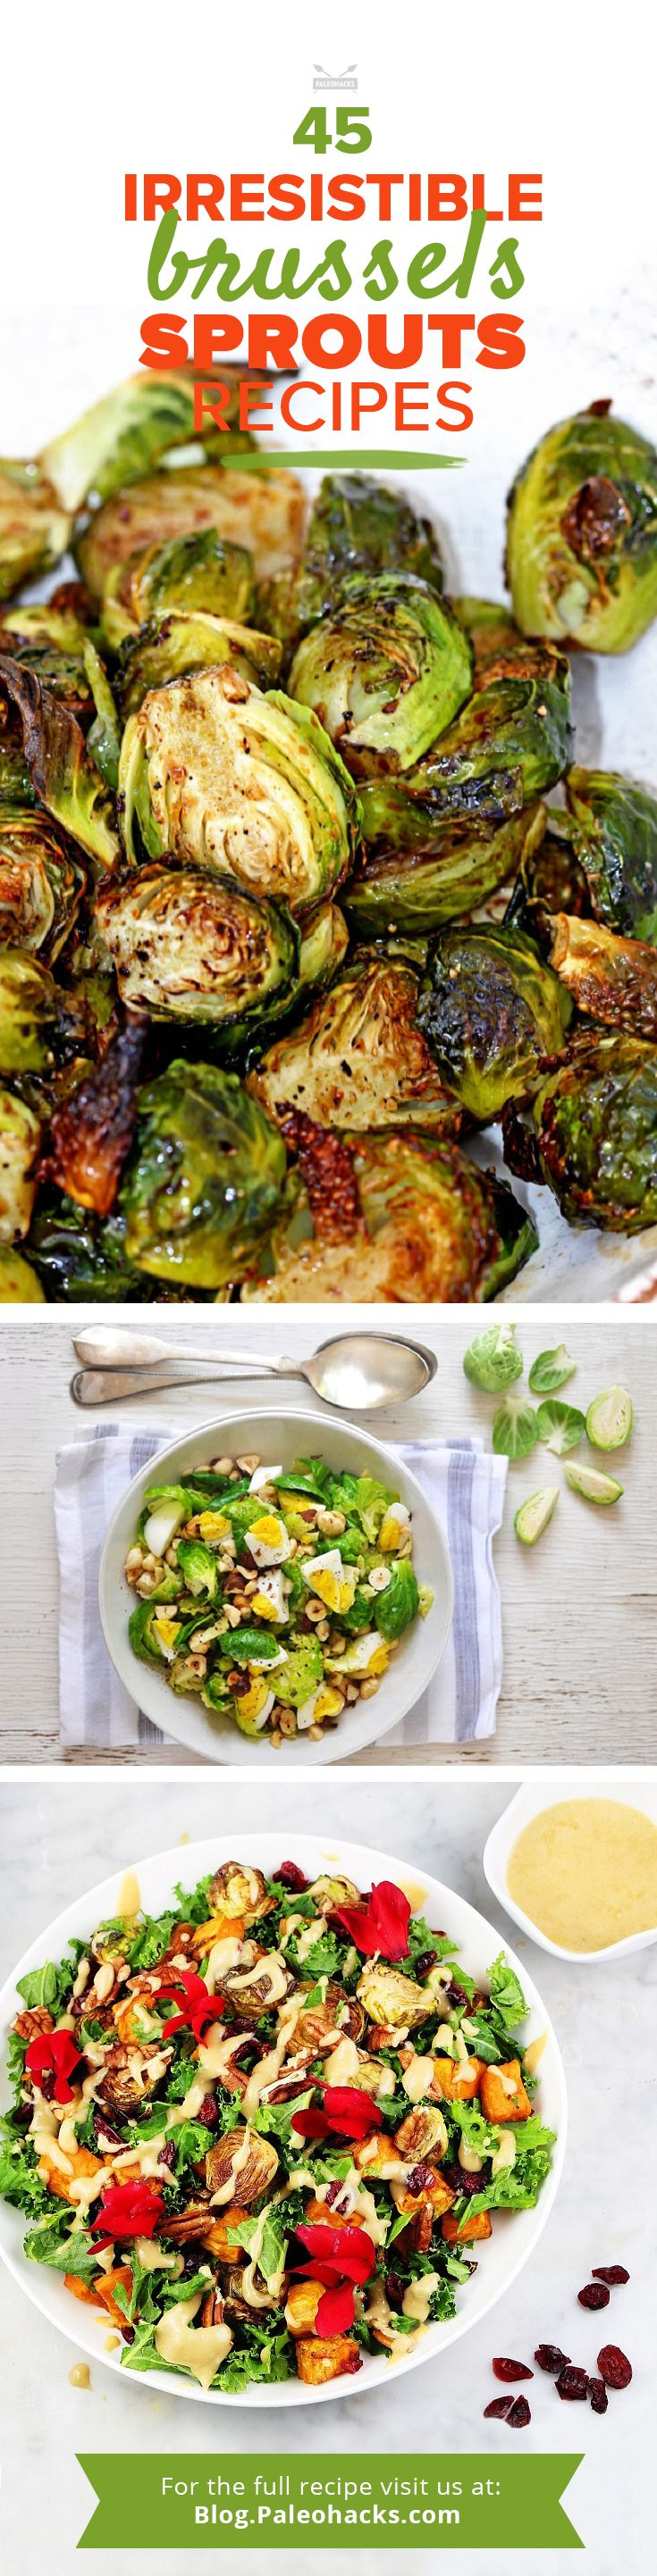 Brussels Sprout lovers, we know who you are. So, we gathered the best and most irresistible Brussels Sprout recipes in one delicious list. Find the full recipe collection here: http://paleo.co/BrusselsSprRcp #paleohacks #paleo